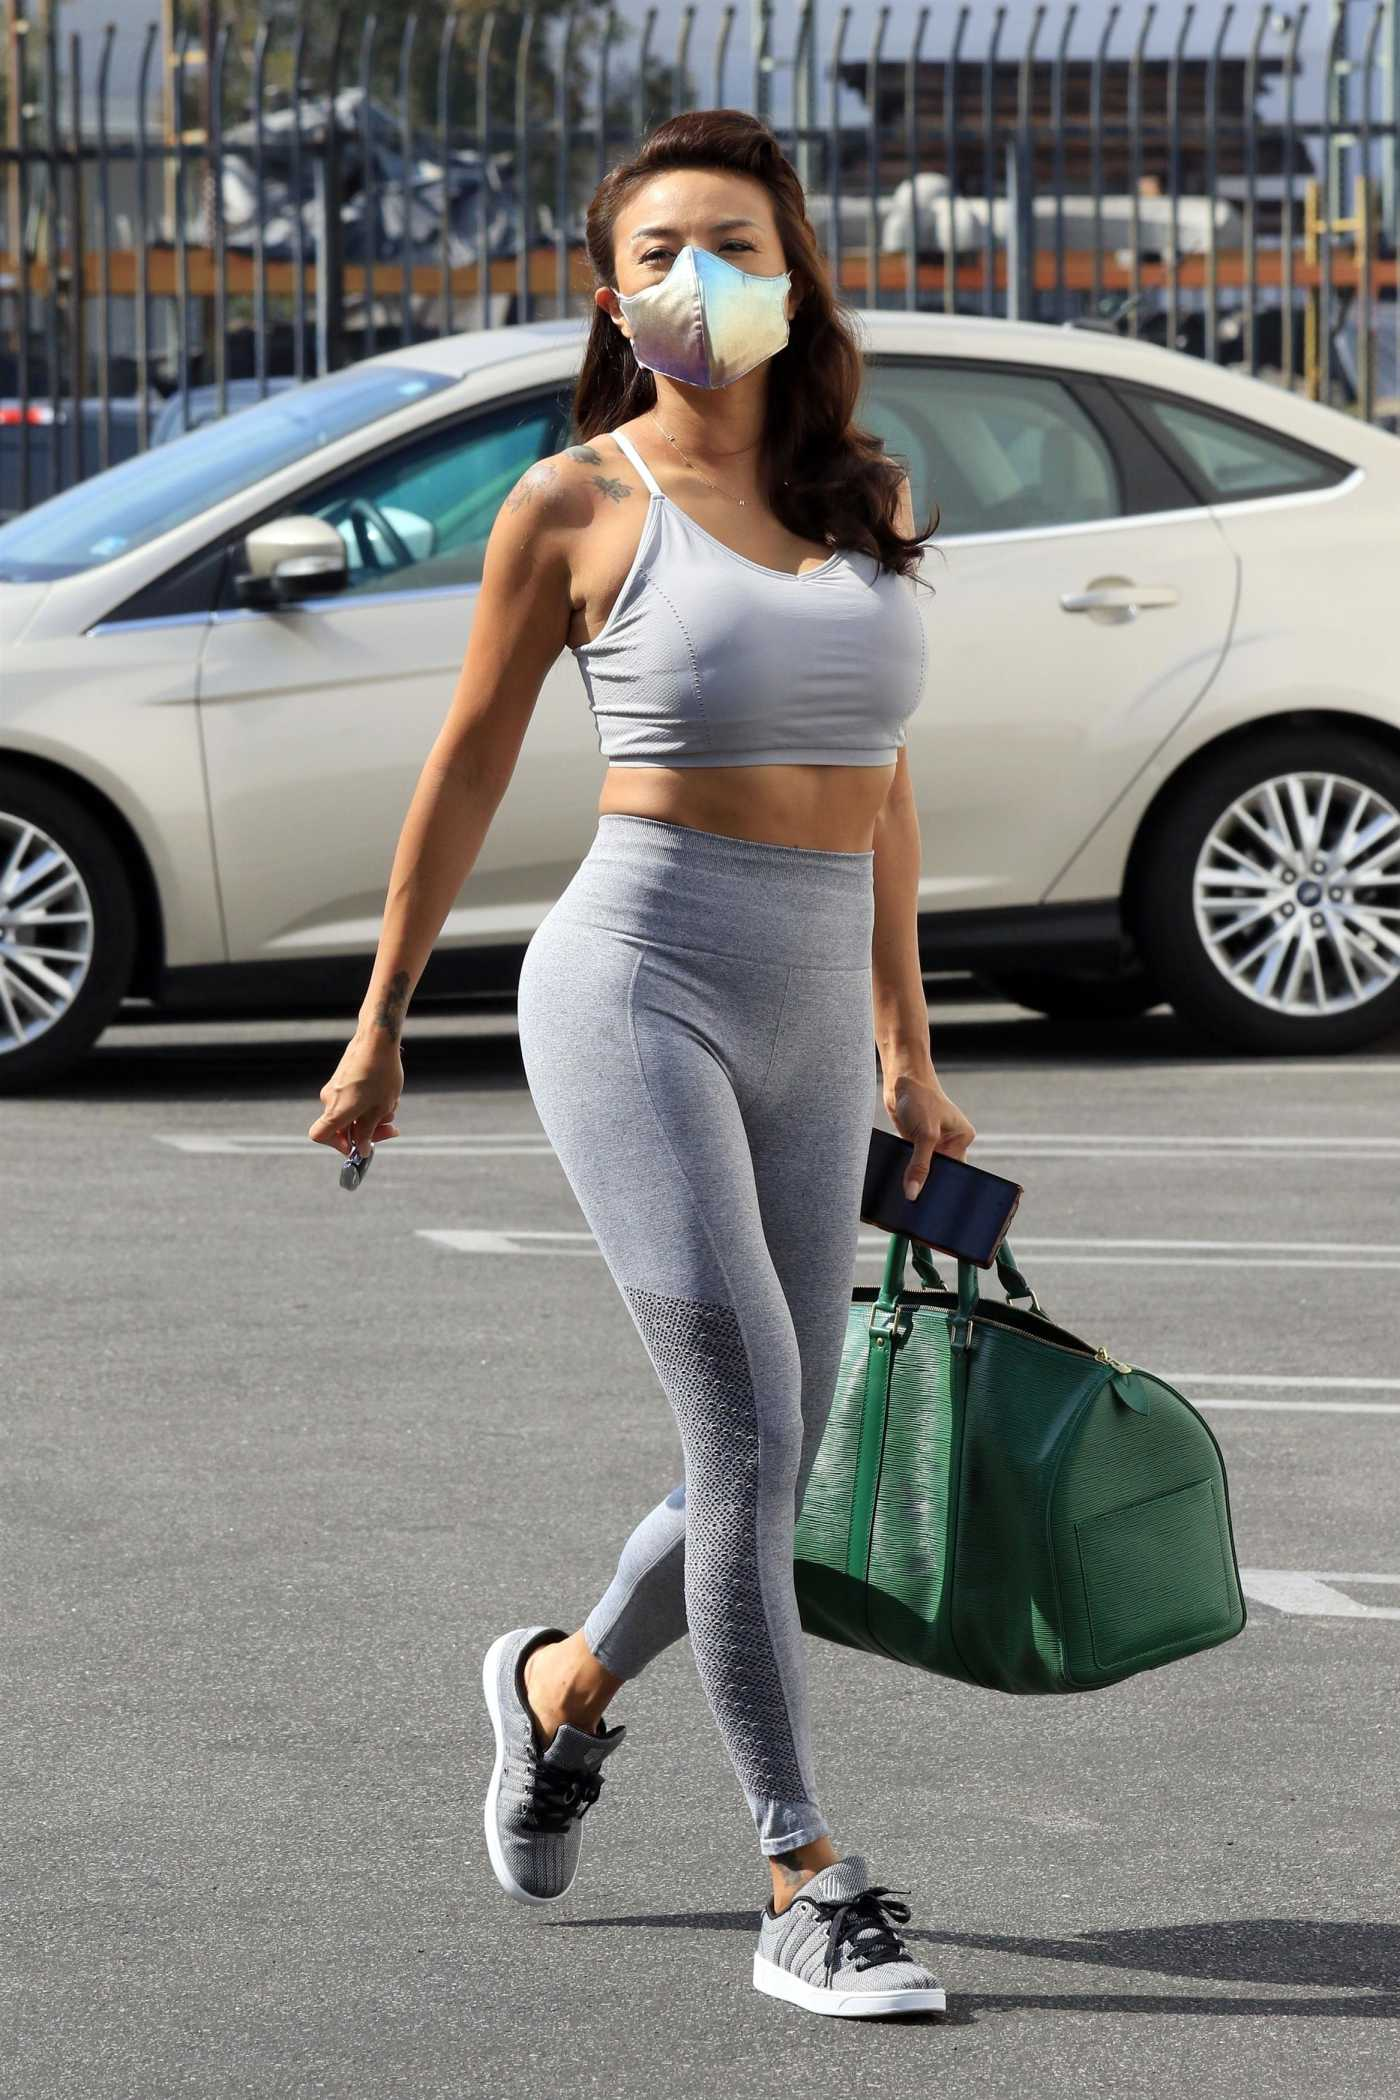 Jeannie Mai in a Grey Workout Clothes Arrives at the DWTS Studio in Los Angeles 10/20/2020